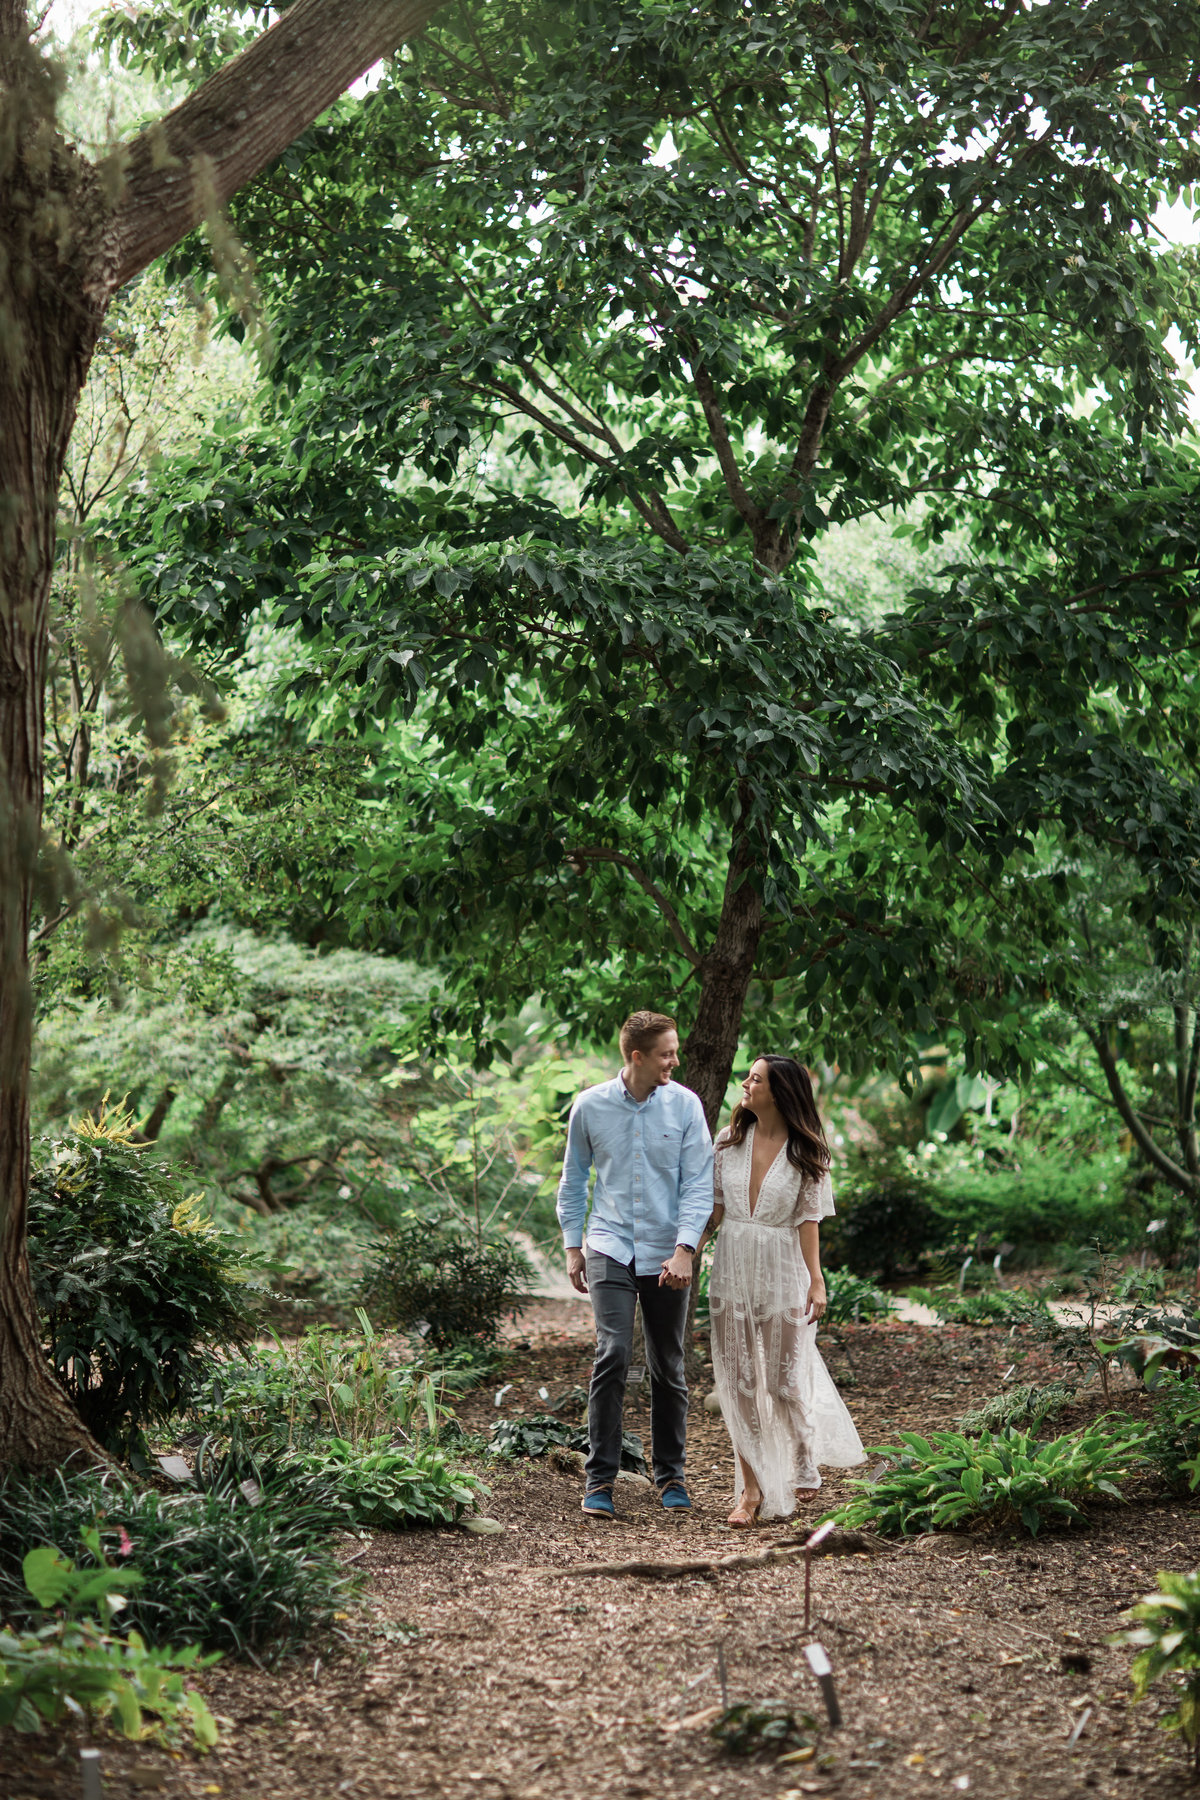 Danielle-Defayette-Photography-Raleigh-Arboretum=Engagement-72